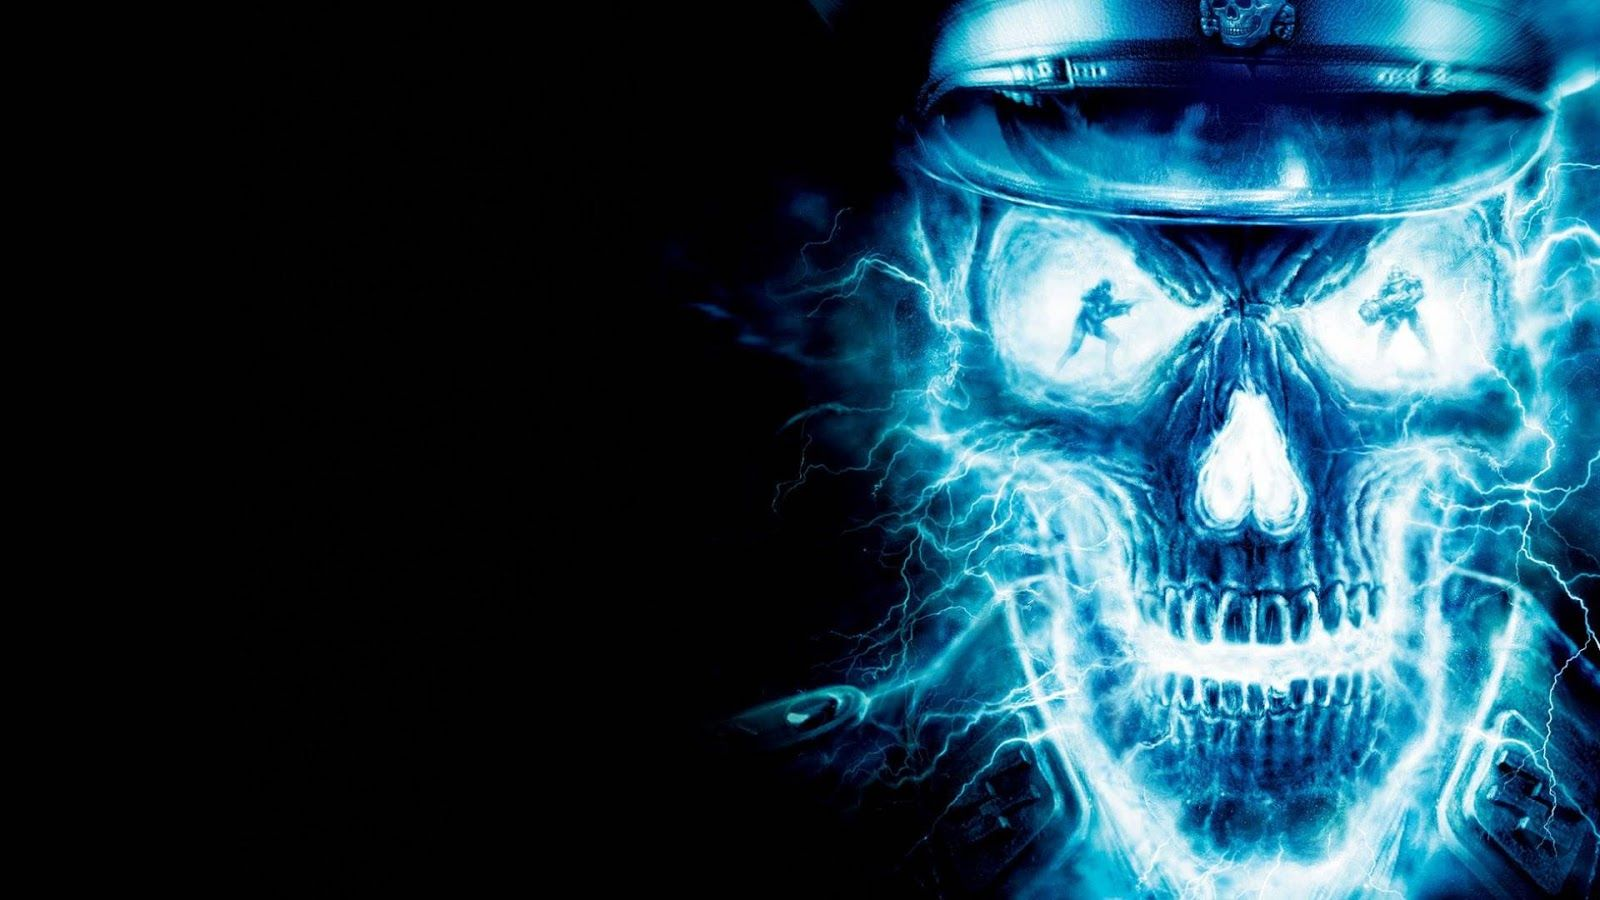 Hd Skull Wallpapers 1080p Skull Wallpaper Hd Skull Wallpapers Ghost Rider Wallpaper